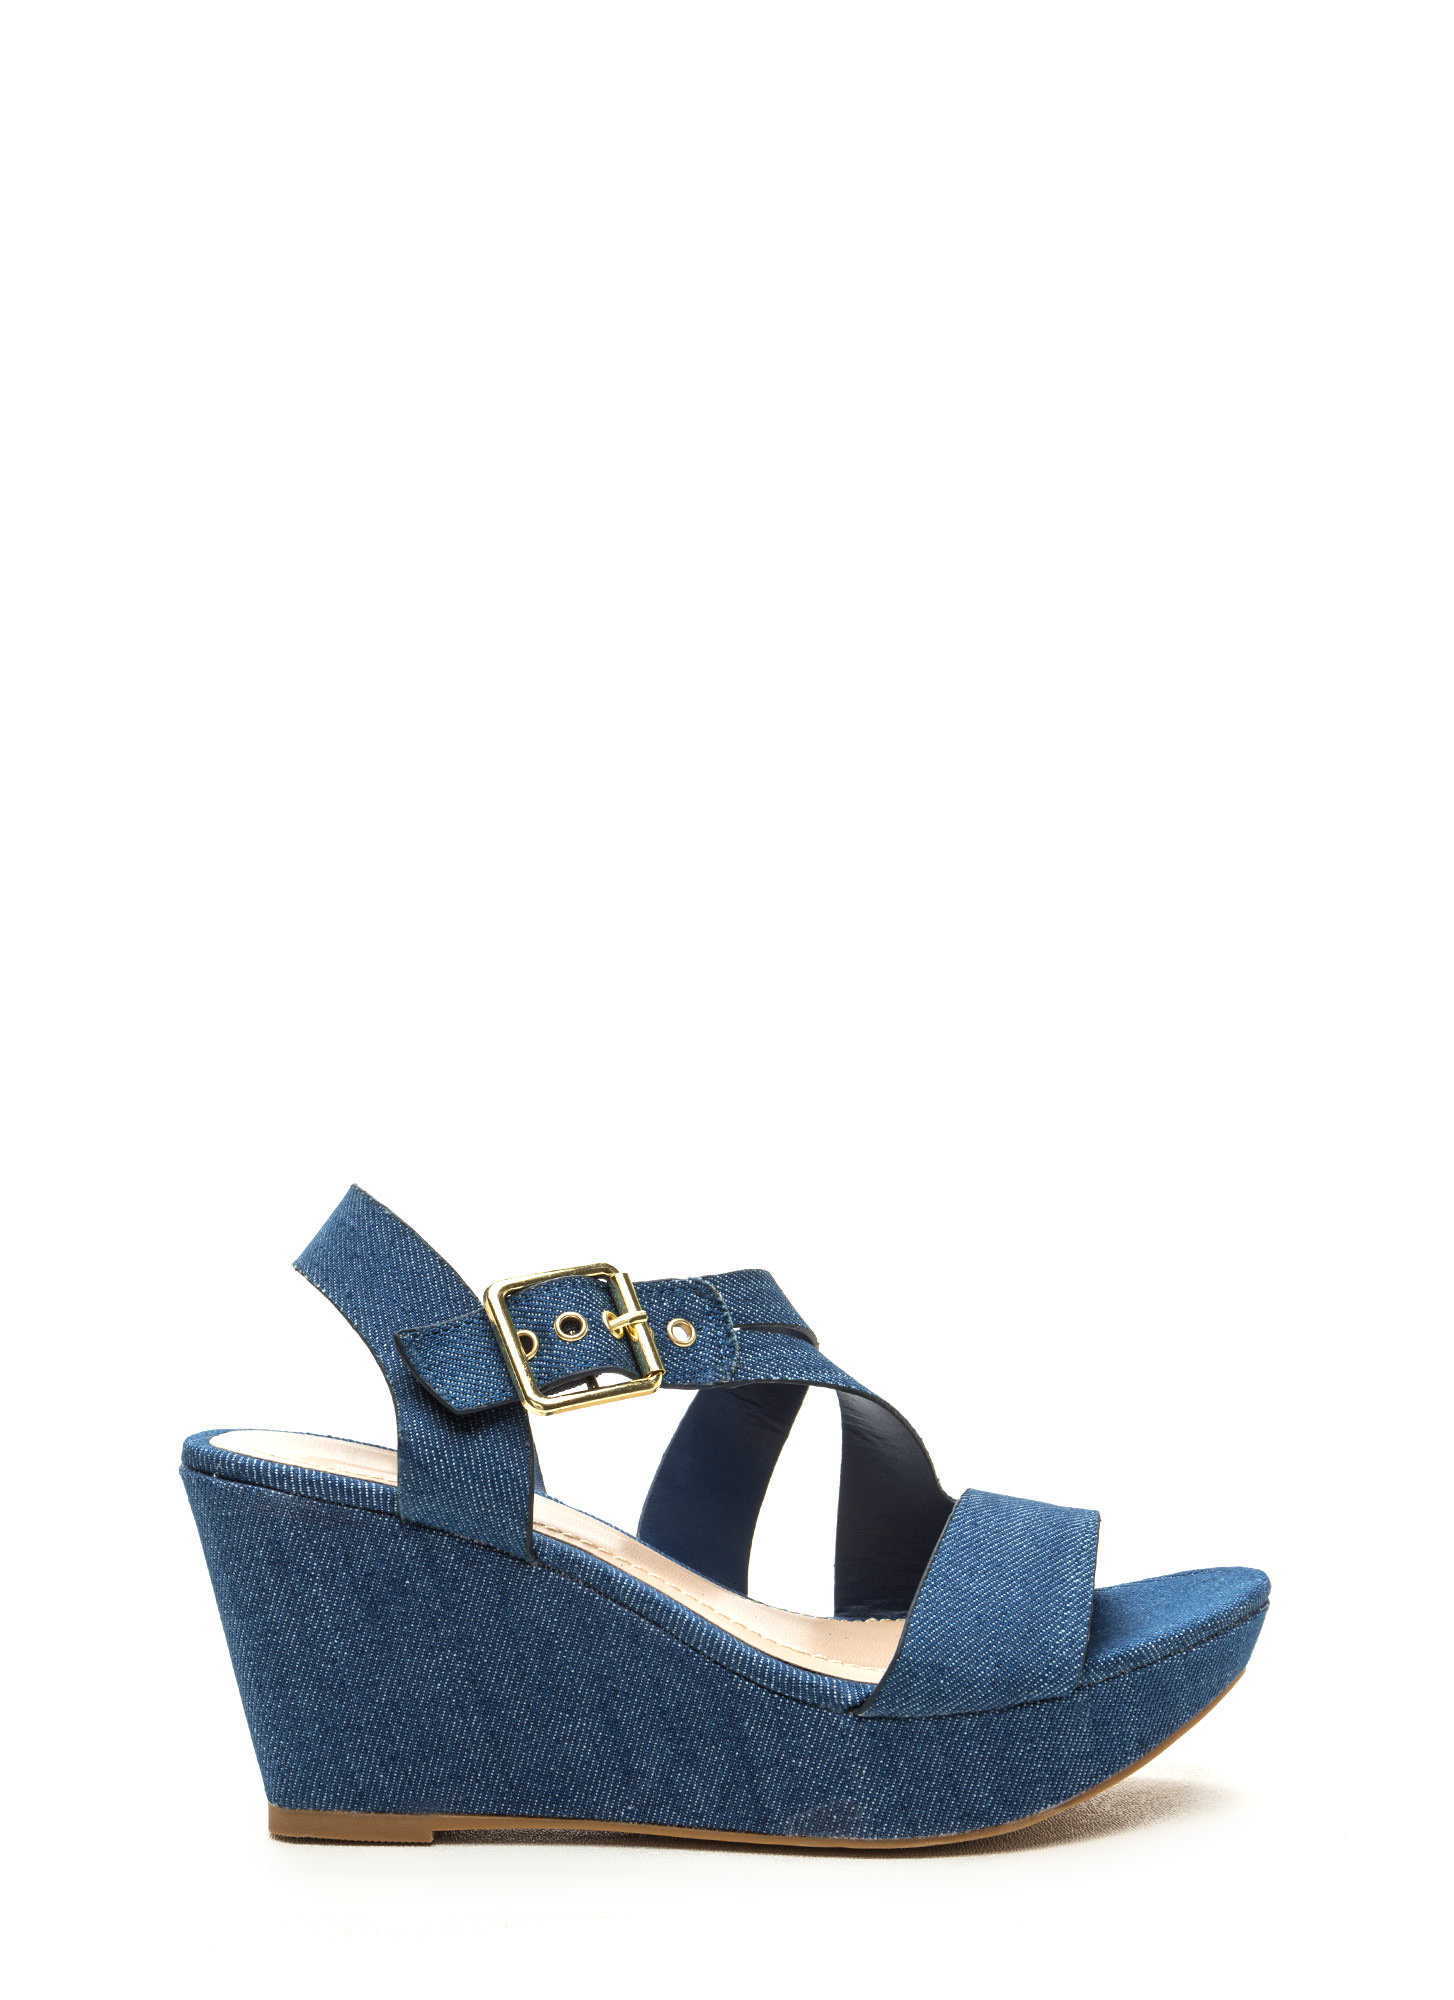 Wrap Request Strappy Denim Wedges Image